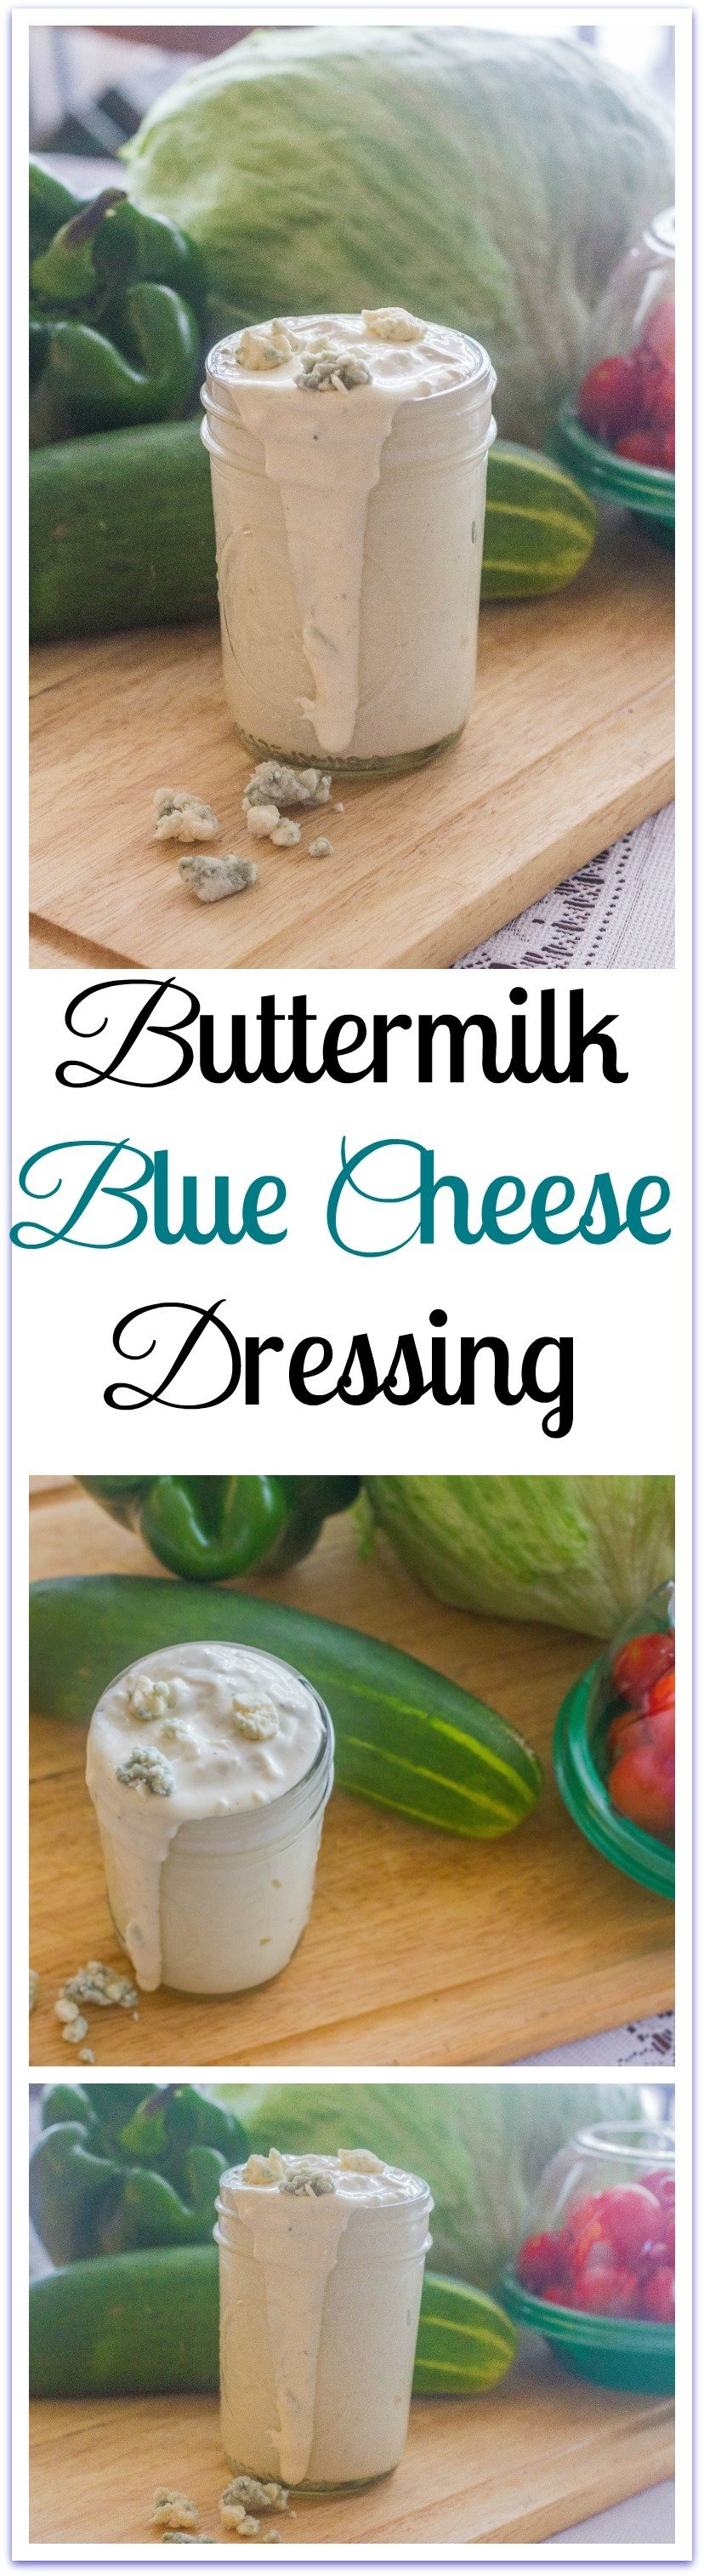 Along with my love for blue cheese comes a fondness for ButtermilkBlue Cheese Dressing.It packs a wallop of flavor into each tablespoonful. So, you can use it sparingly, if so inclined, and still have a mountain of taste. #Buttermilk #BlueCheese